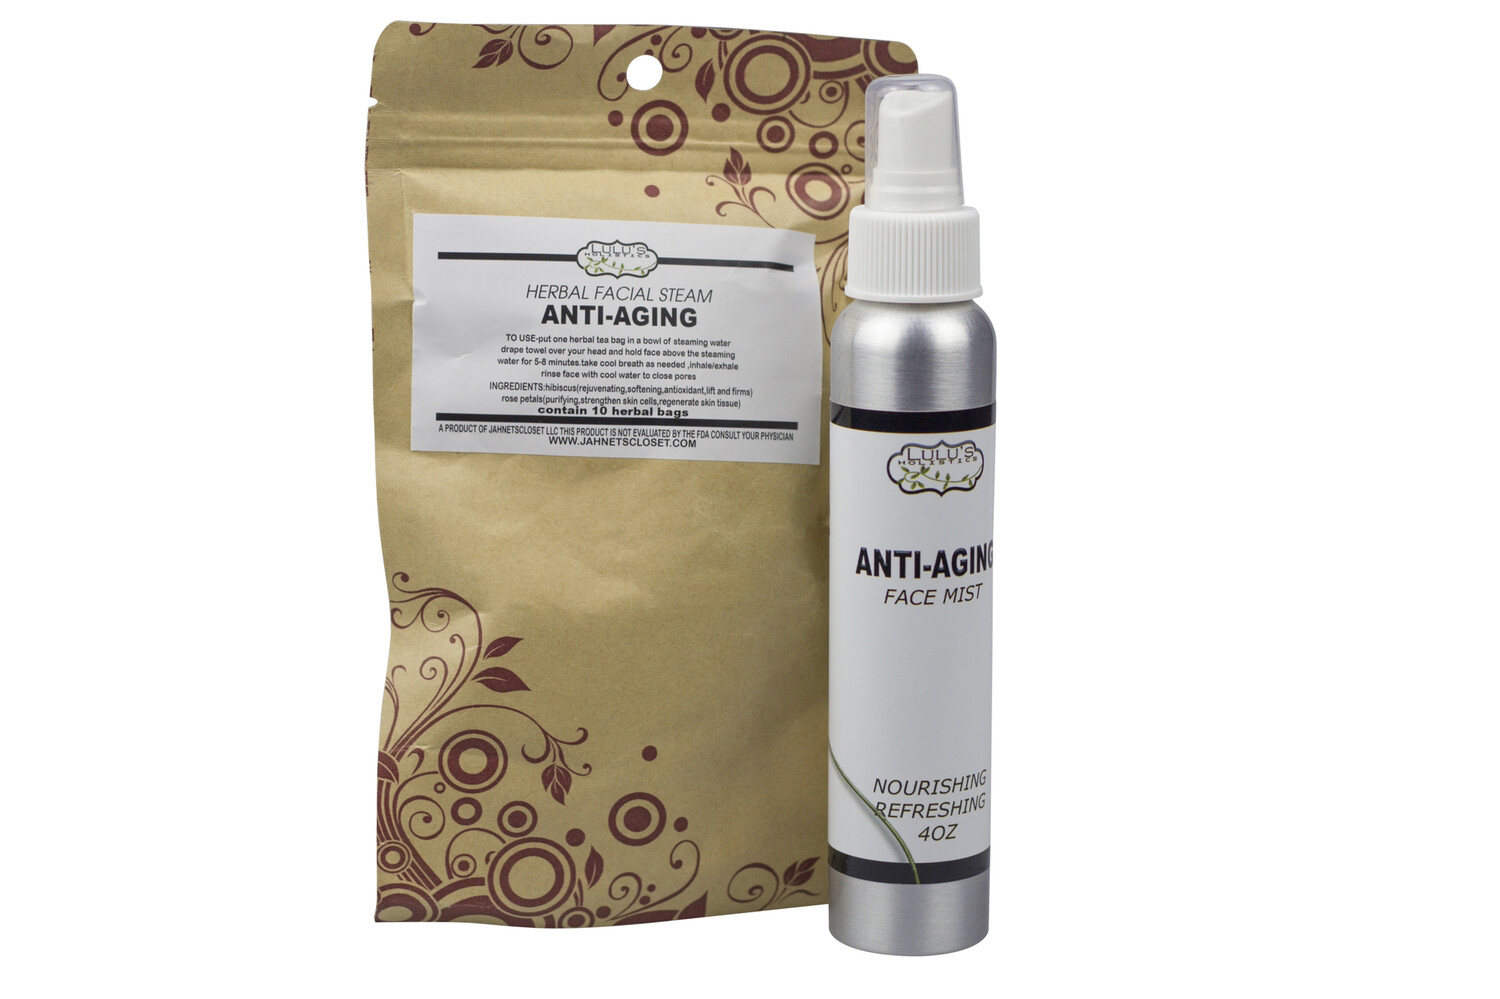 ANTI-AGING STEAM AND MIST SET